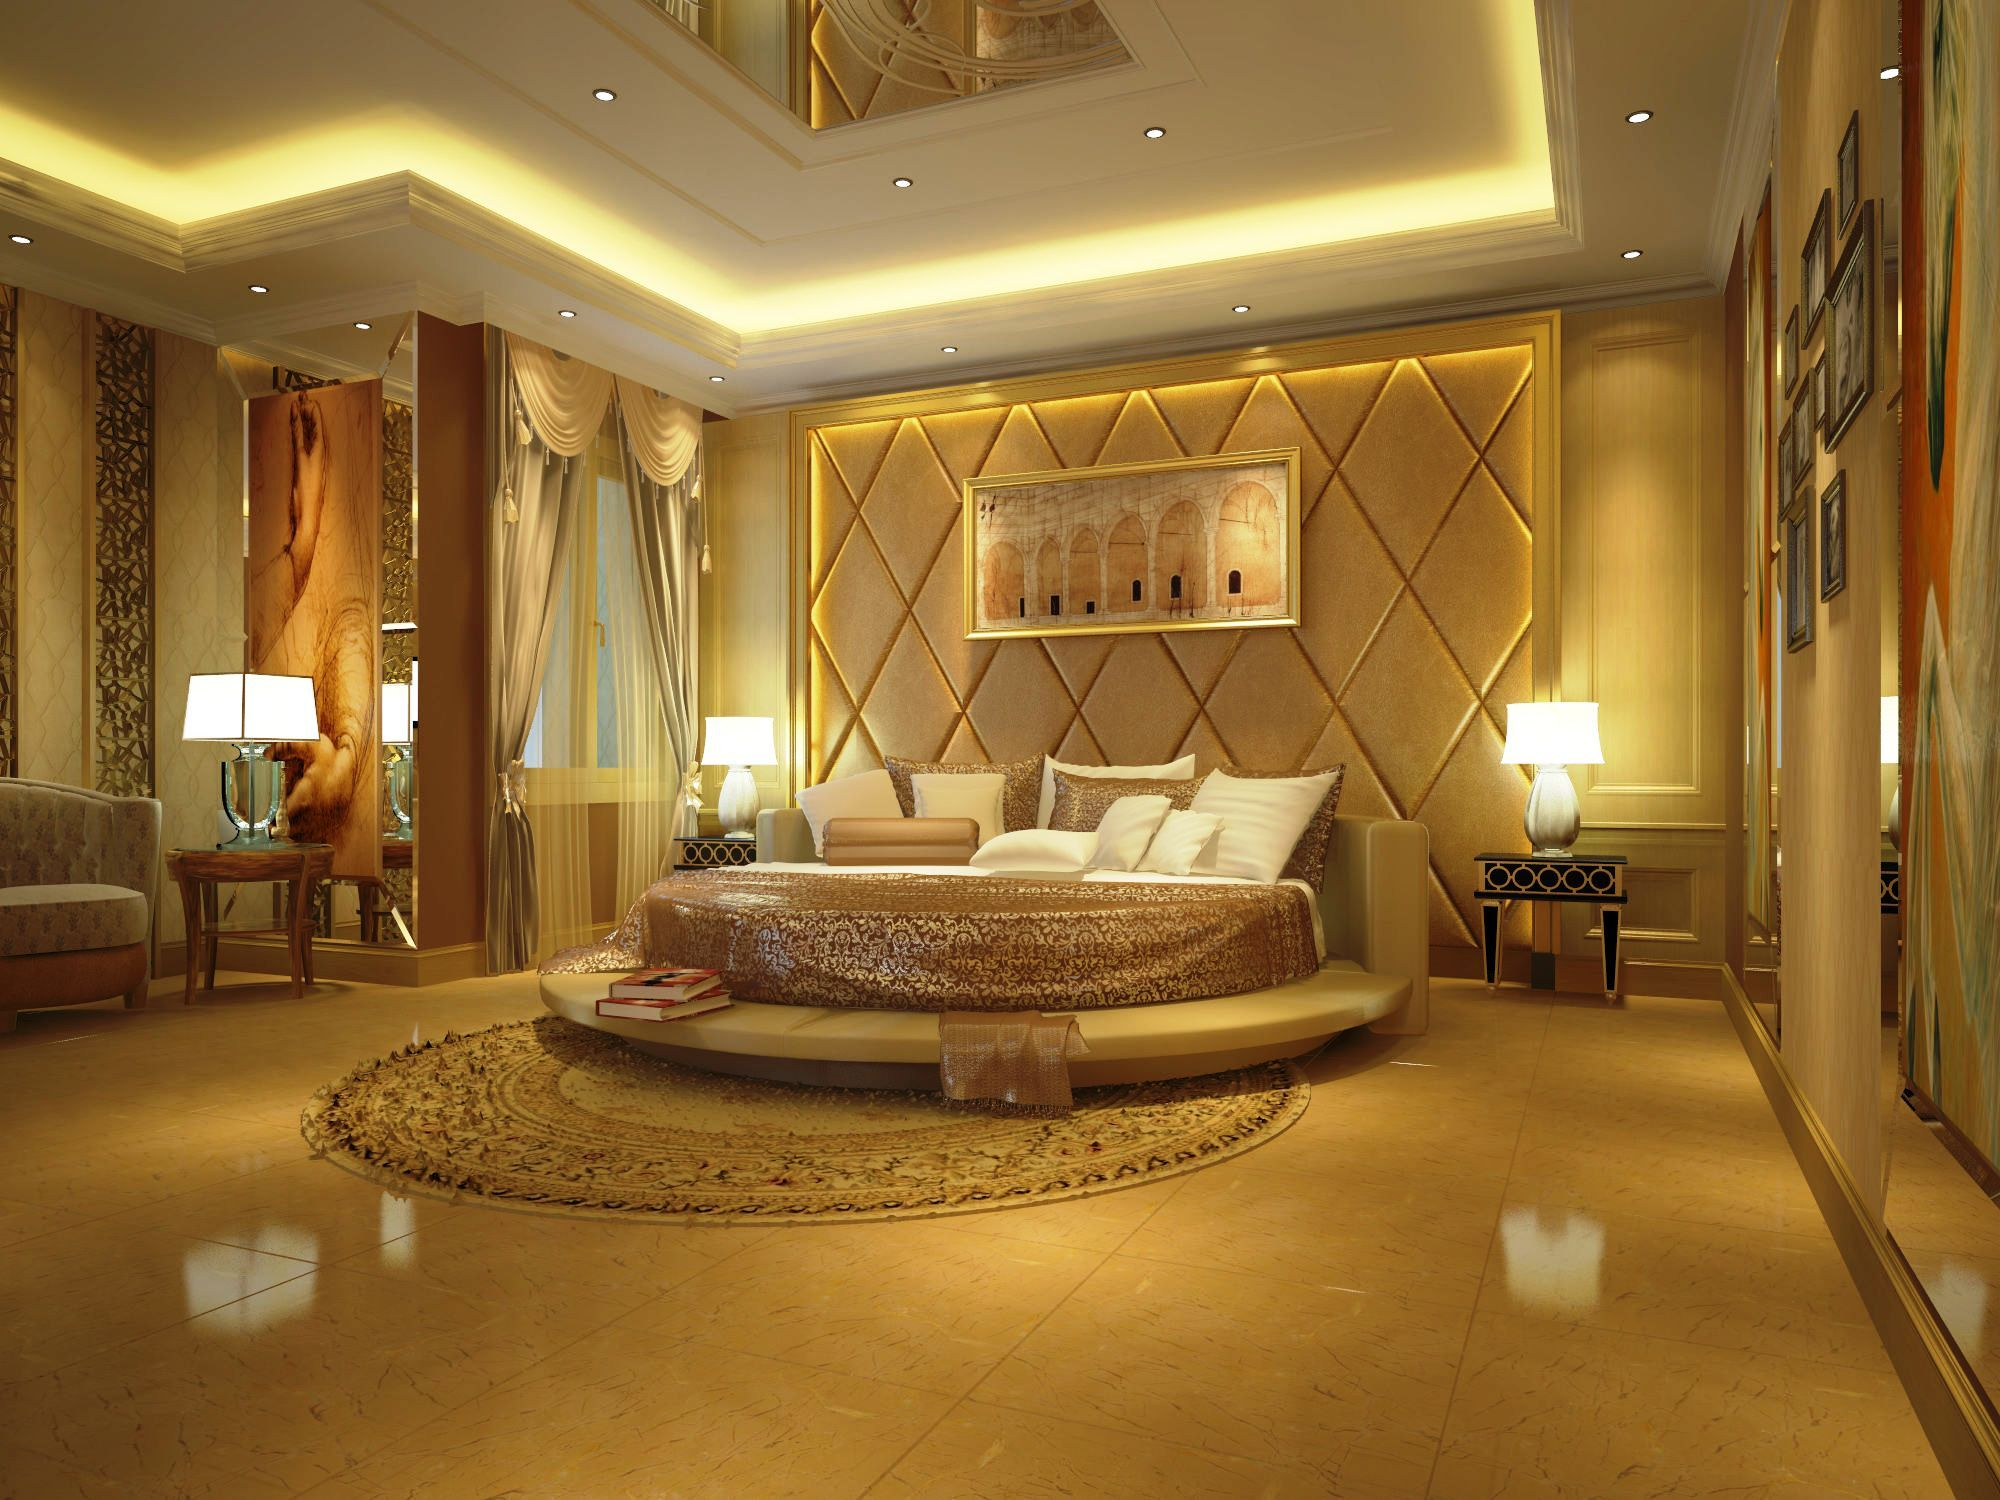 a master bedroom fit for a king queen description from